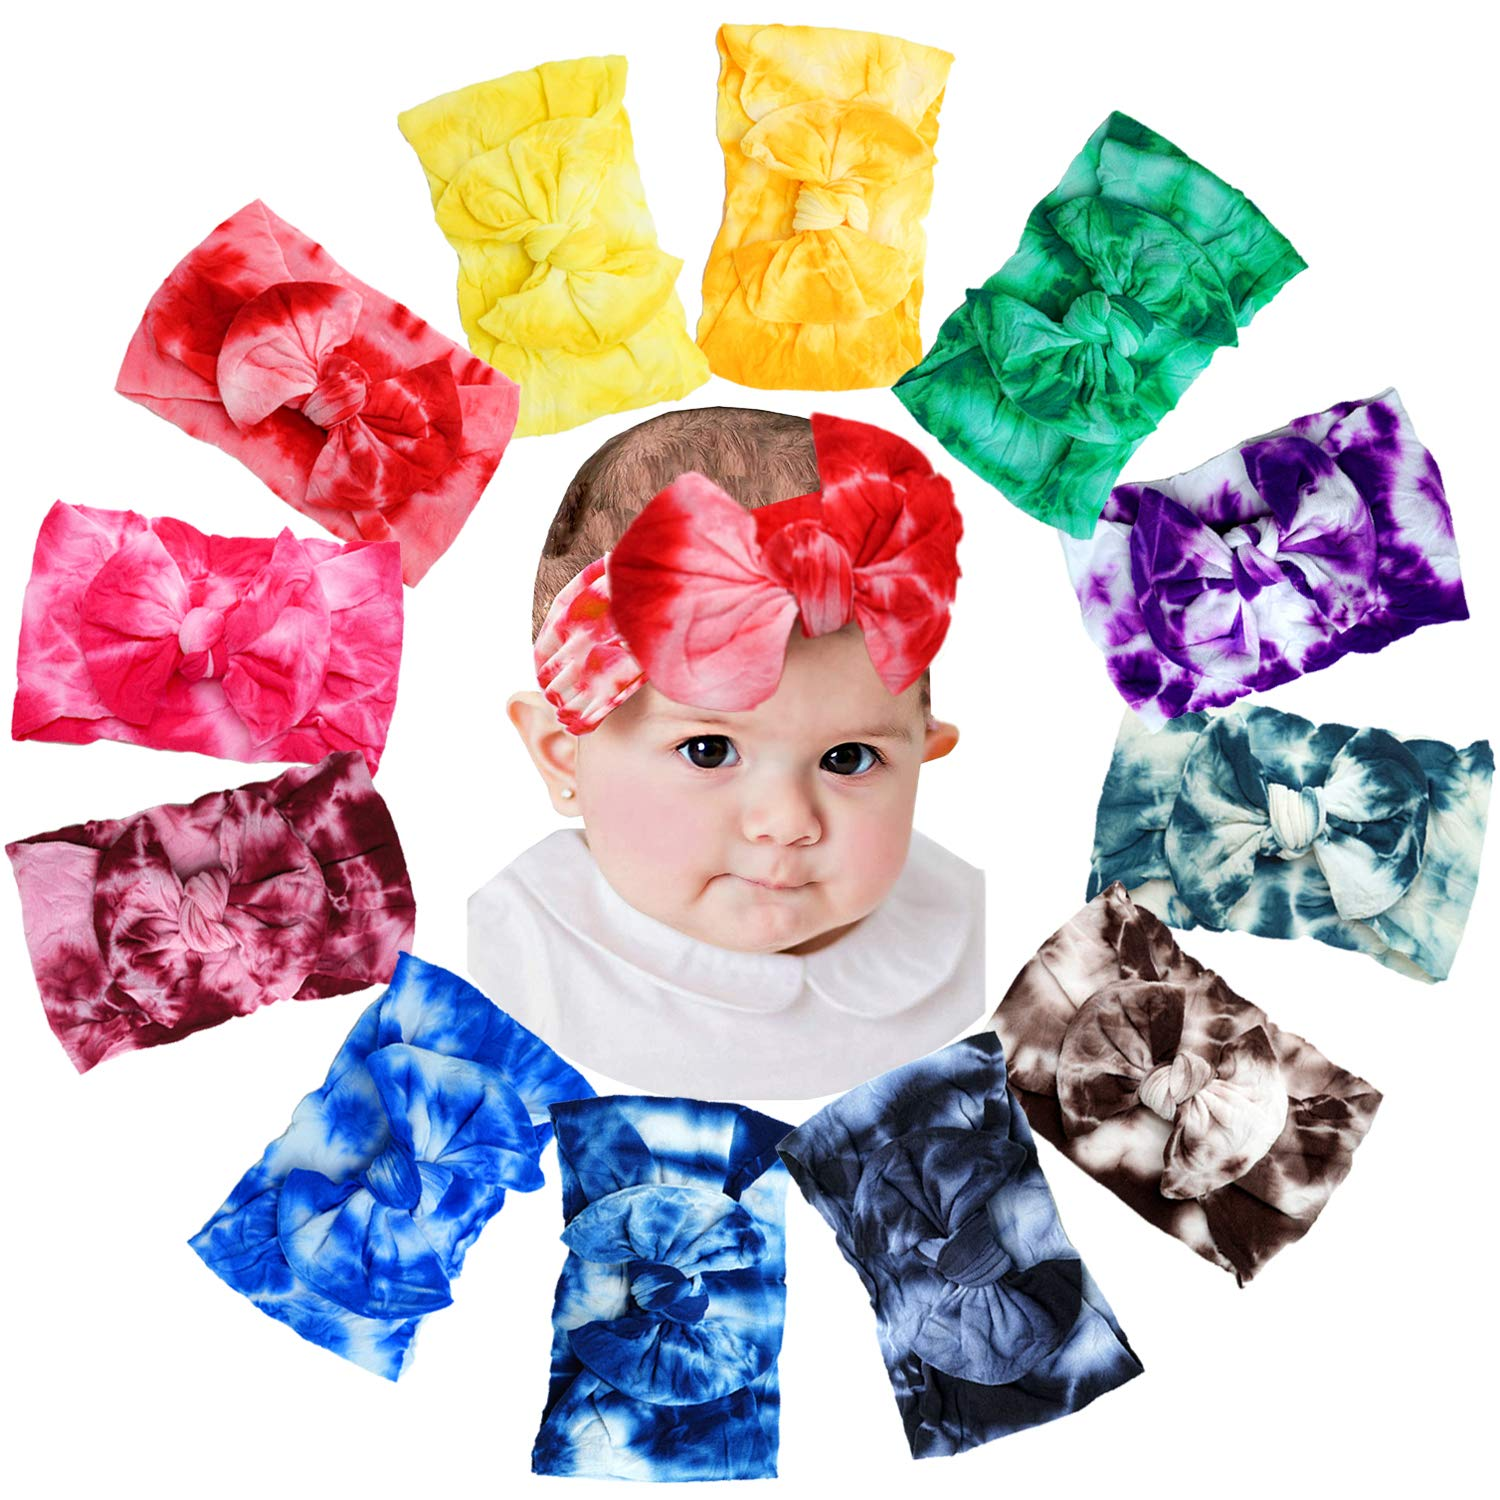 12 Pack Very popular Baby Girls Headbands 4.5Inch Dye Bows Super sale period limited Tie Hair